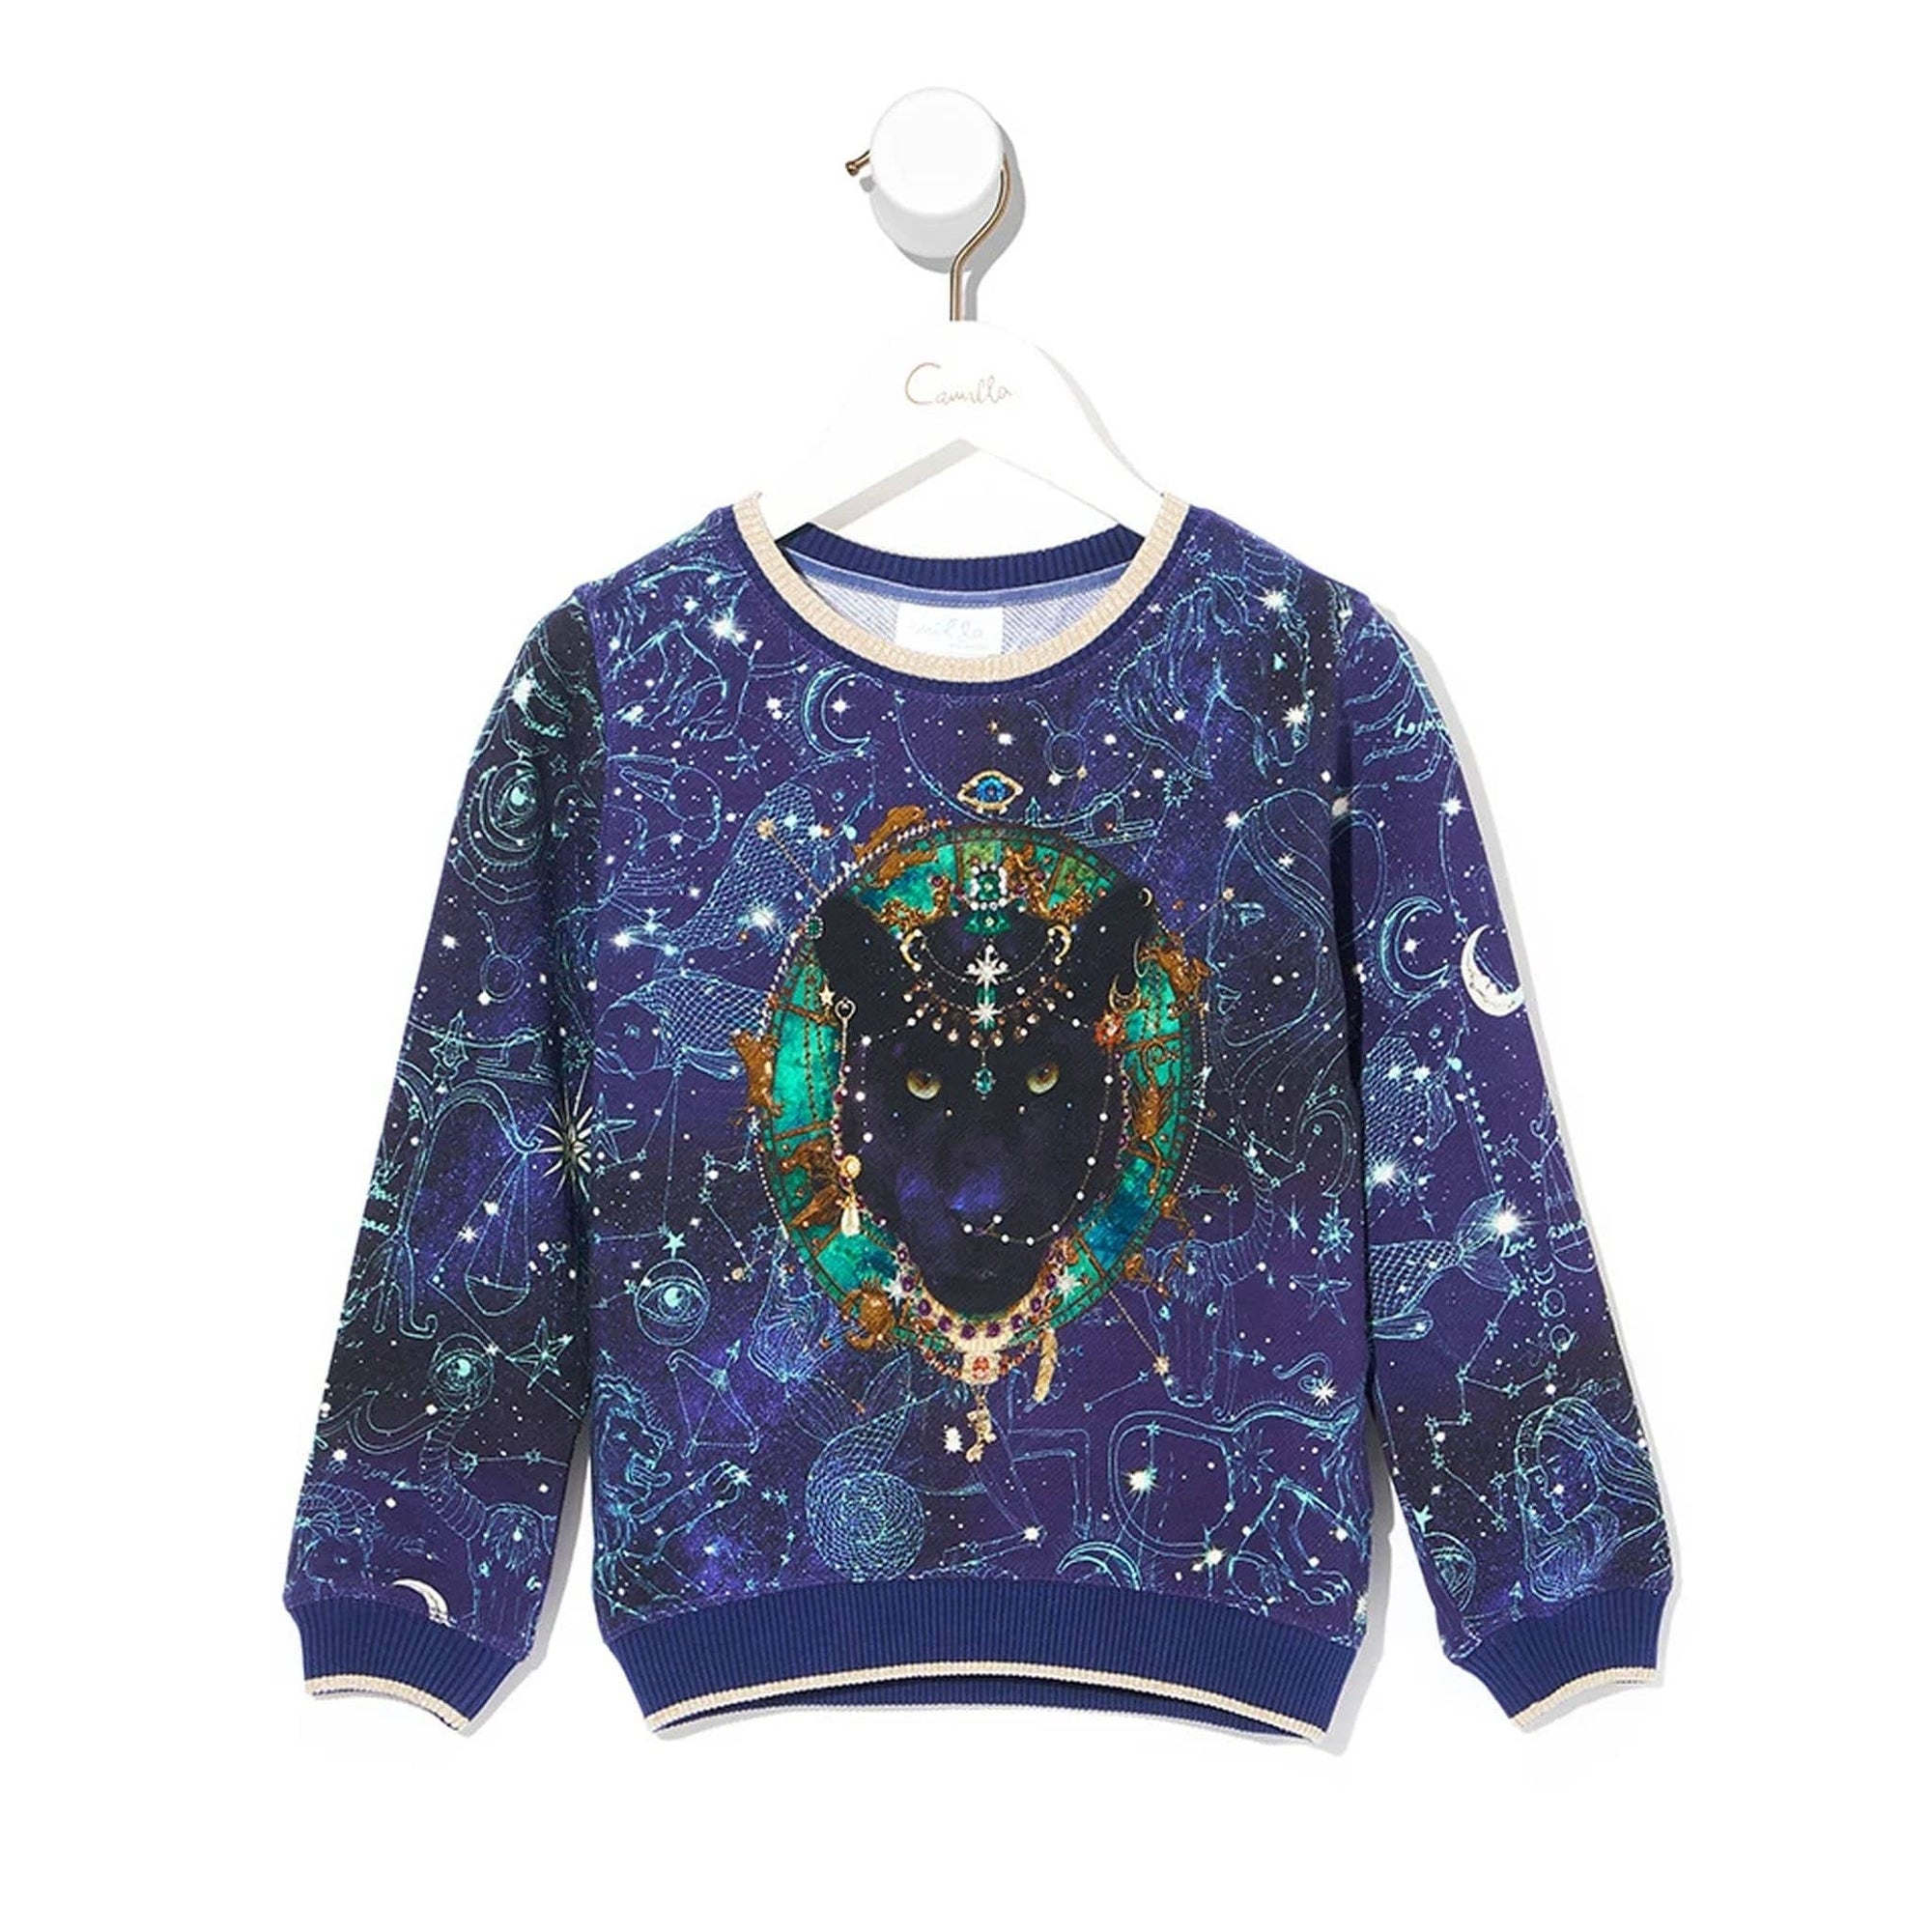 Camilla Stargazers Daughter Kids Sweater